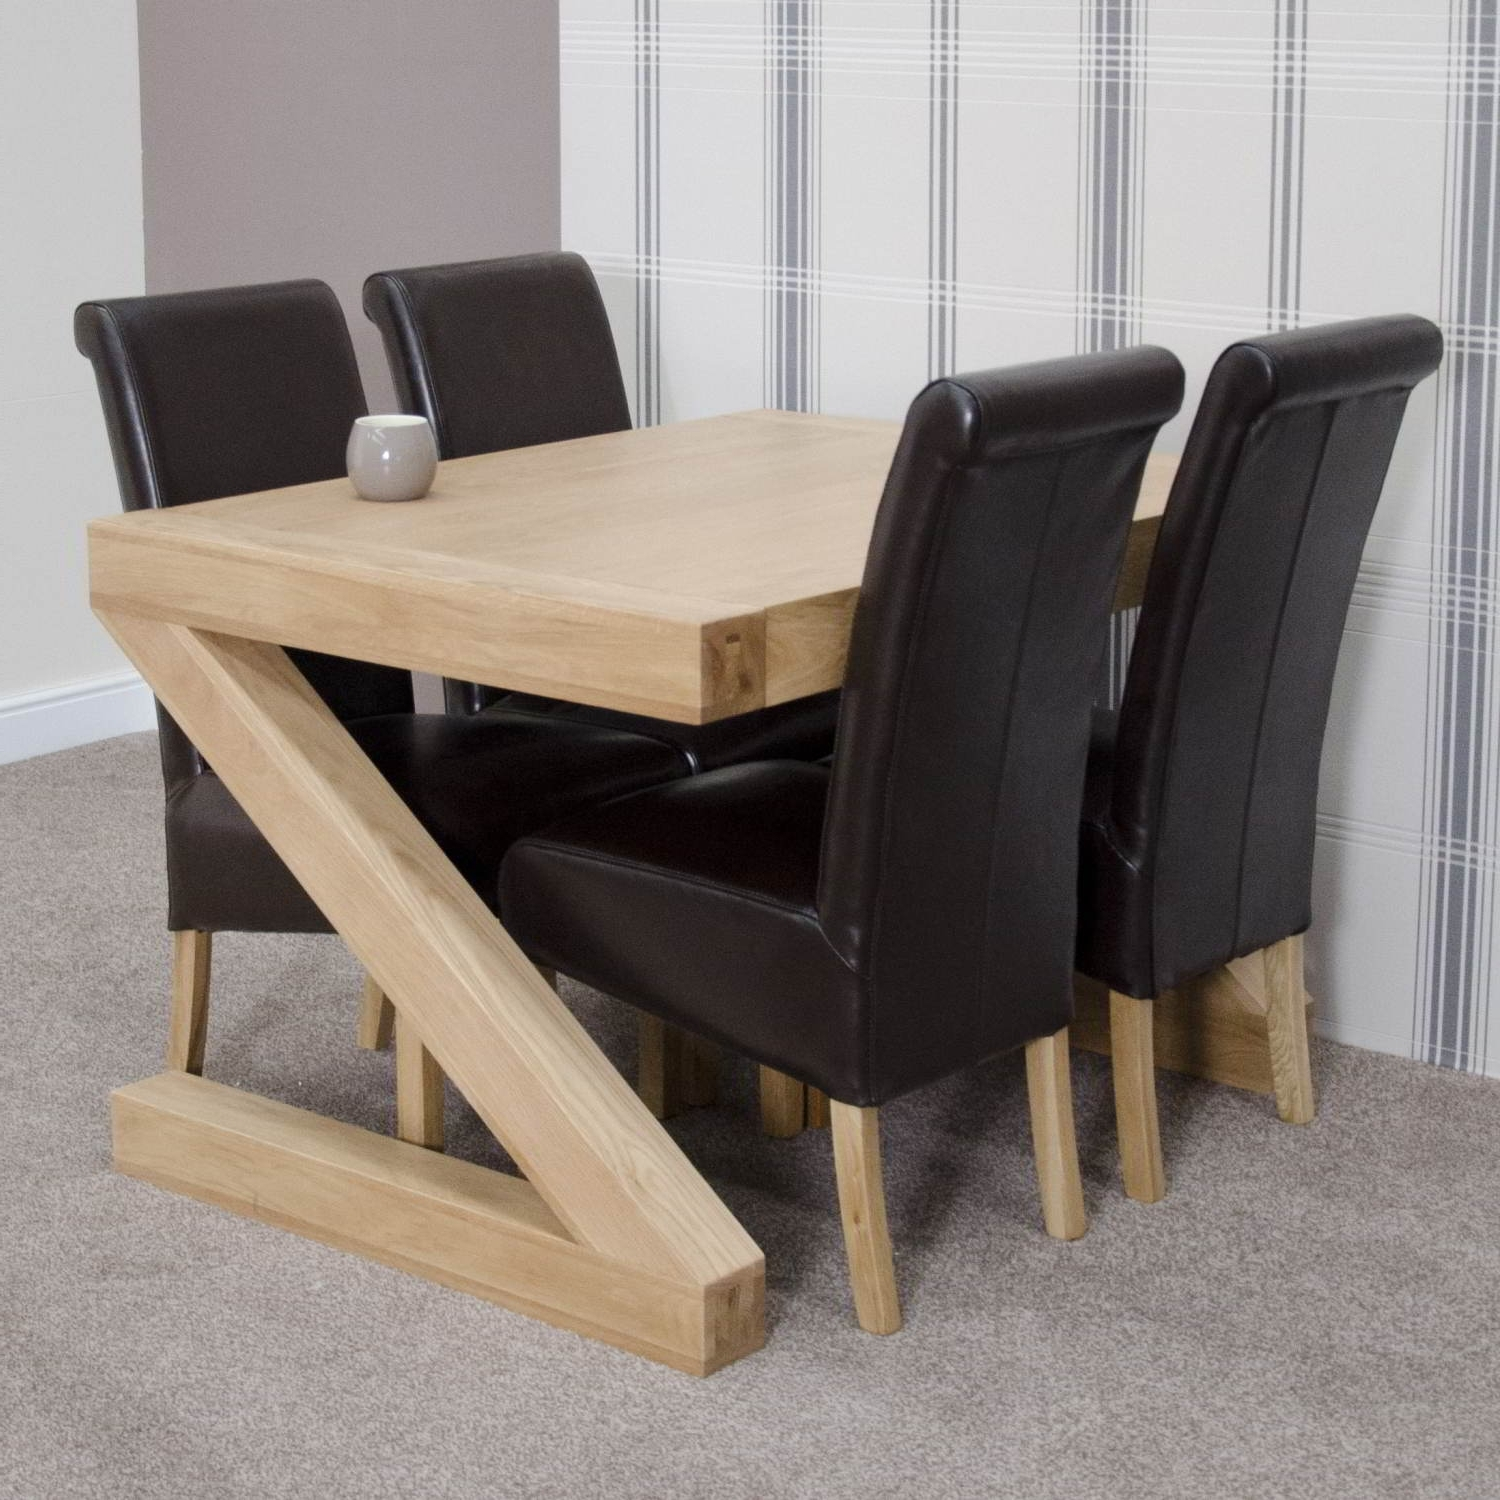 4 Seat Dining Tables Regarding Fashionable Z Solid Oak Designer Furniture Dining Table And Four Chairs Set (Gallery 7 of 25)